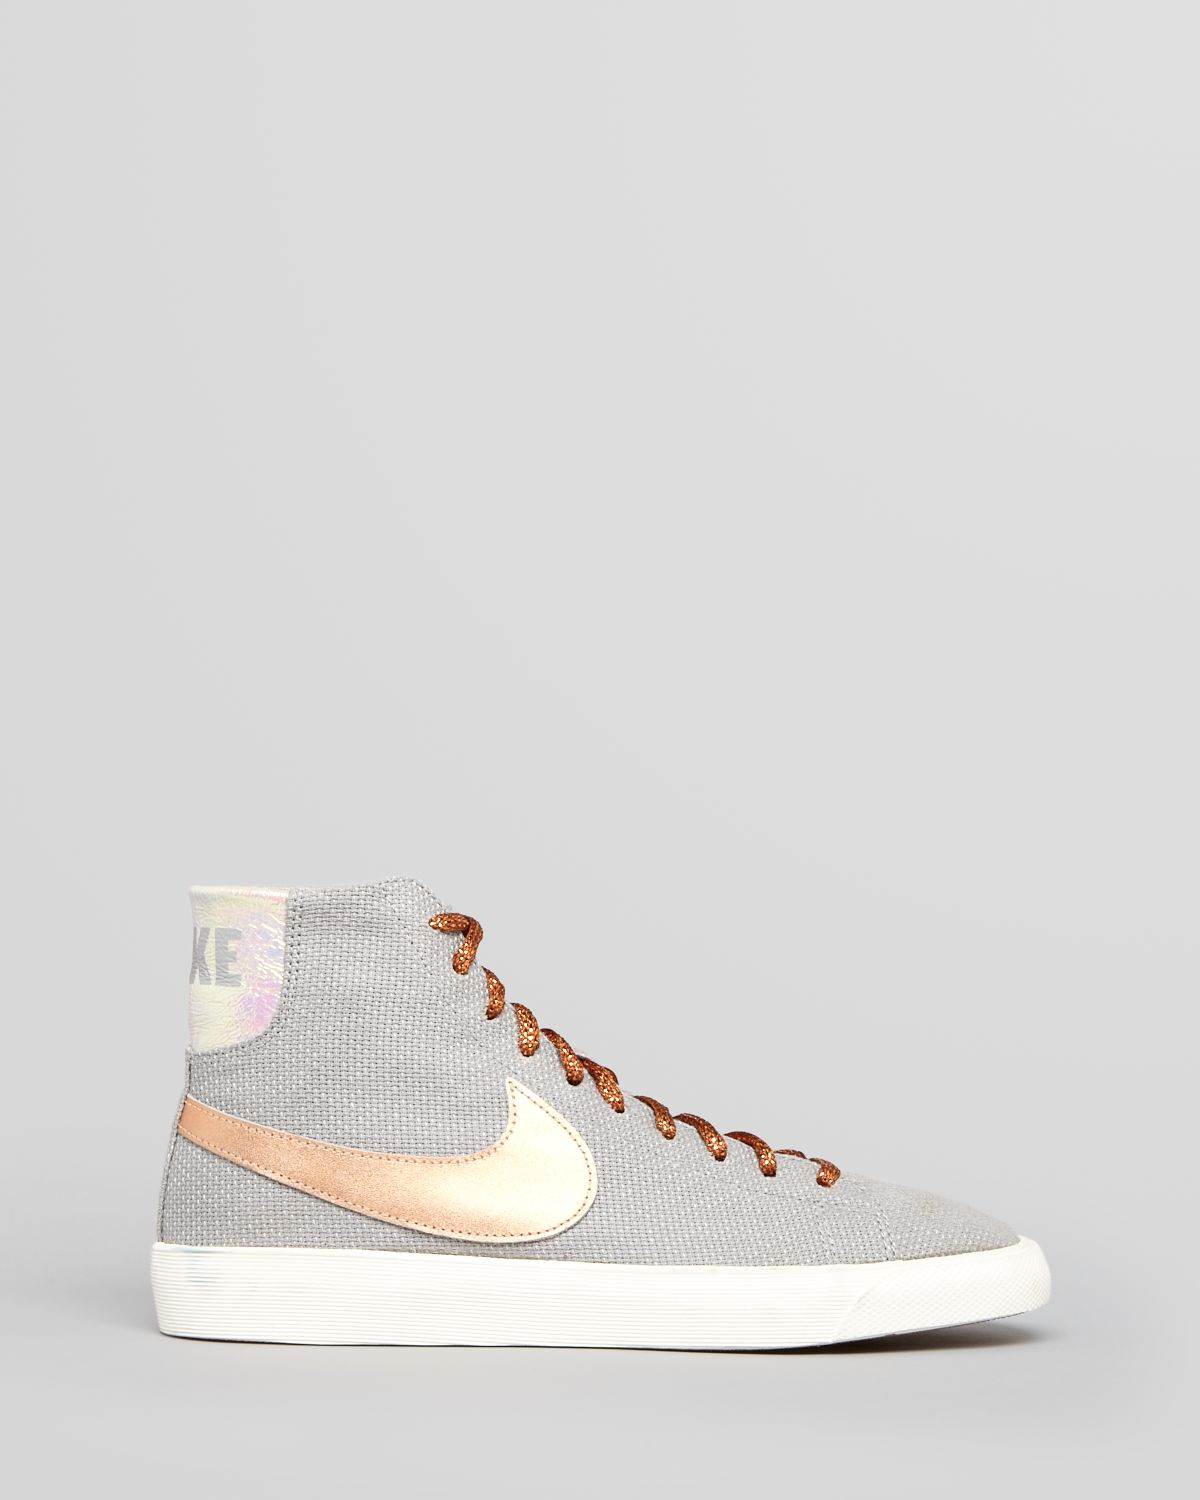 reputable site 462bc 19163 buy nike womens blazer high f4785 12167